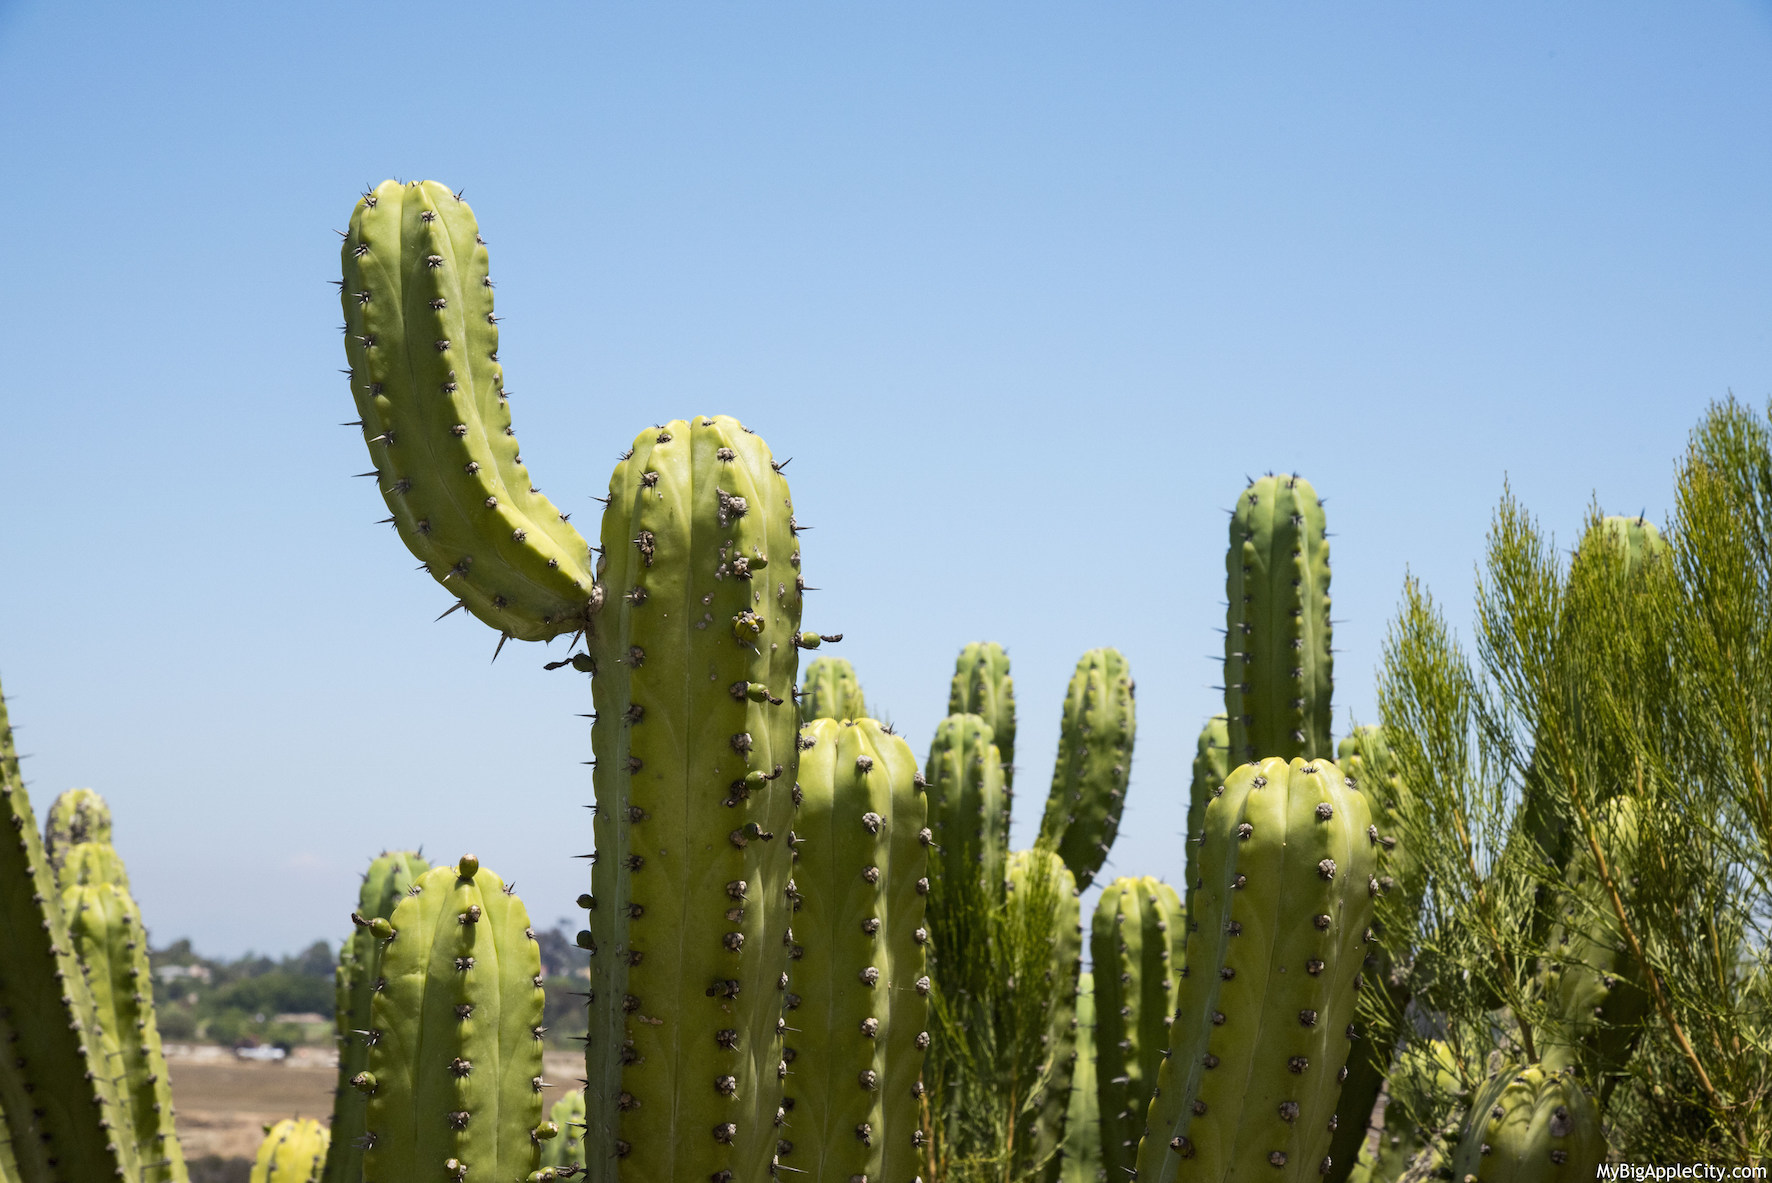 Cactus-travel-San-Diego-Lifestyle-Blogger-USA-MyBigAppleCity